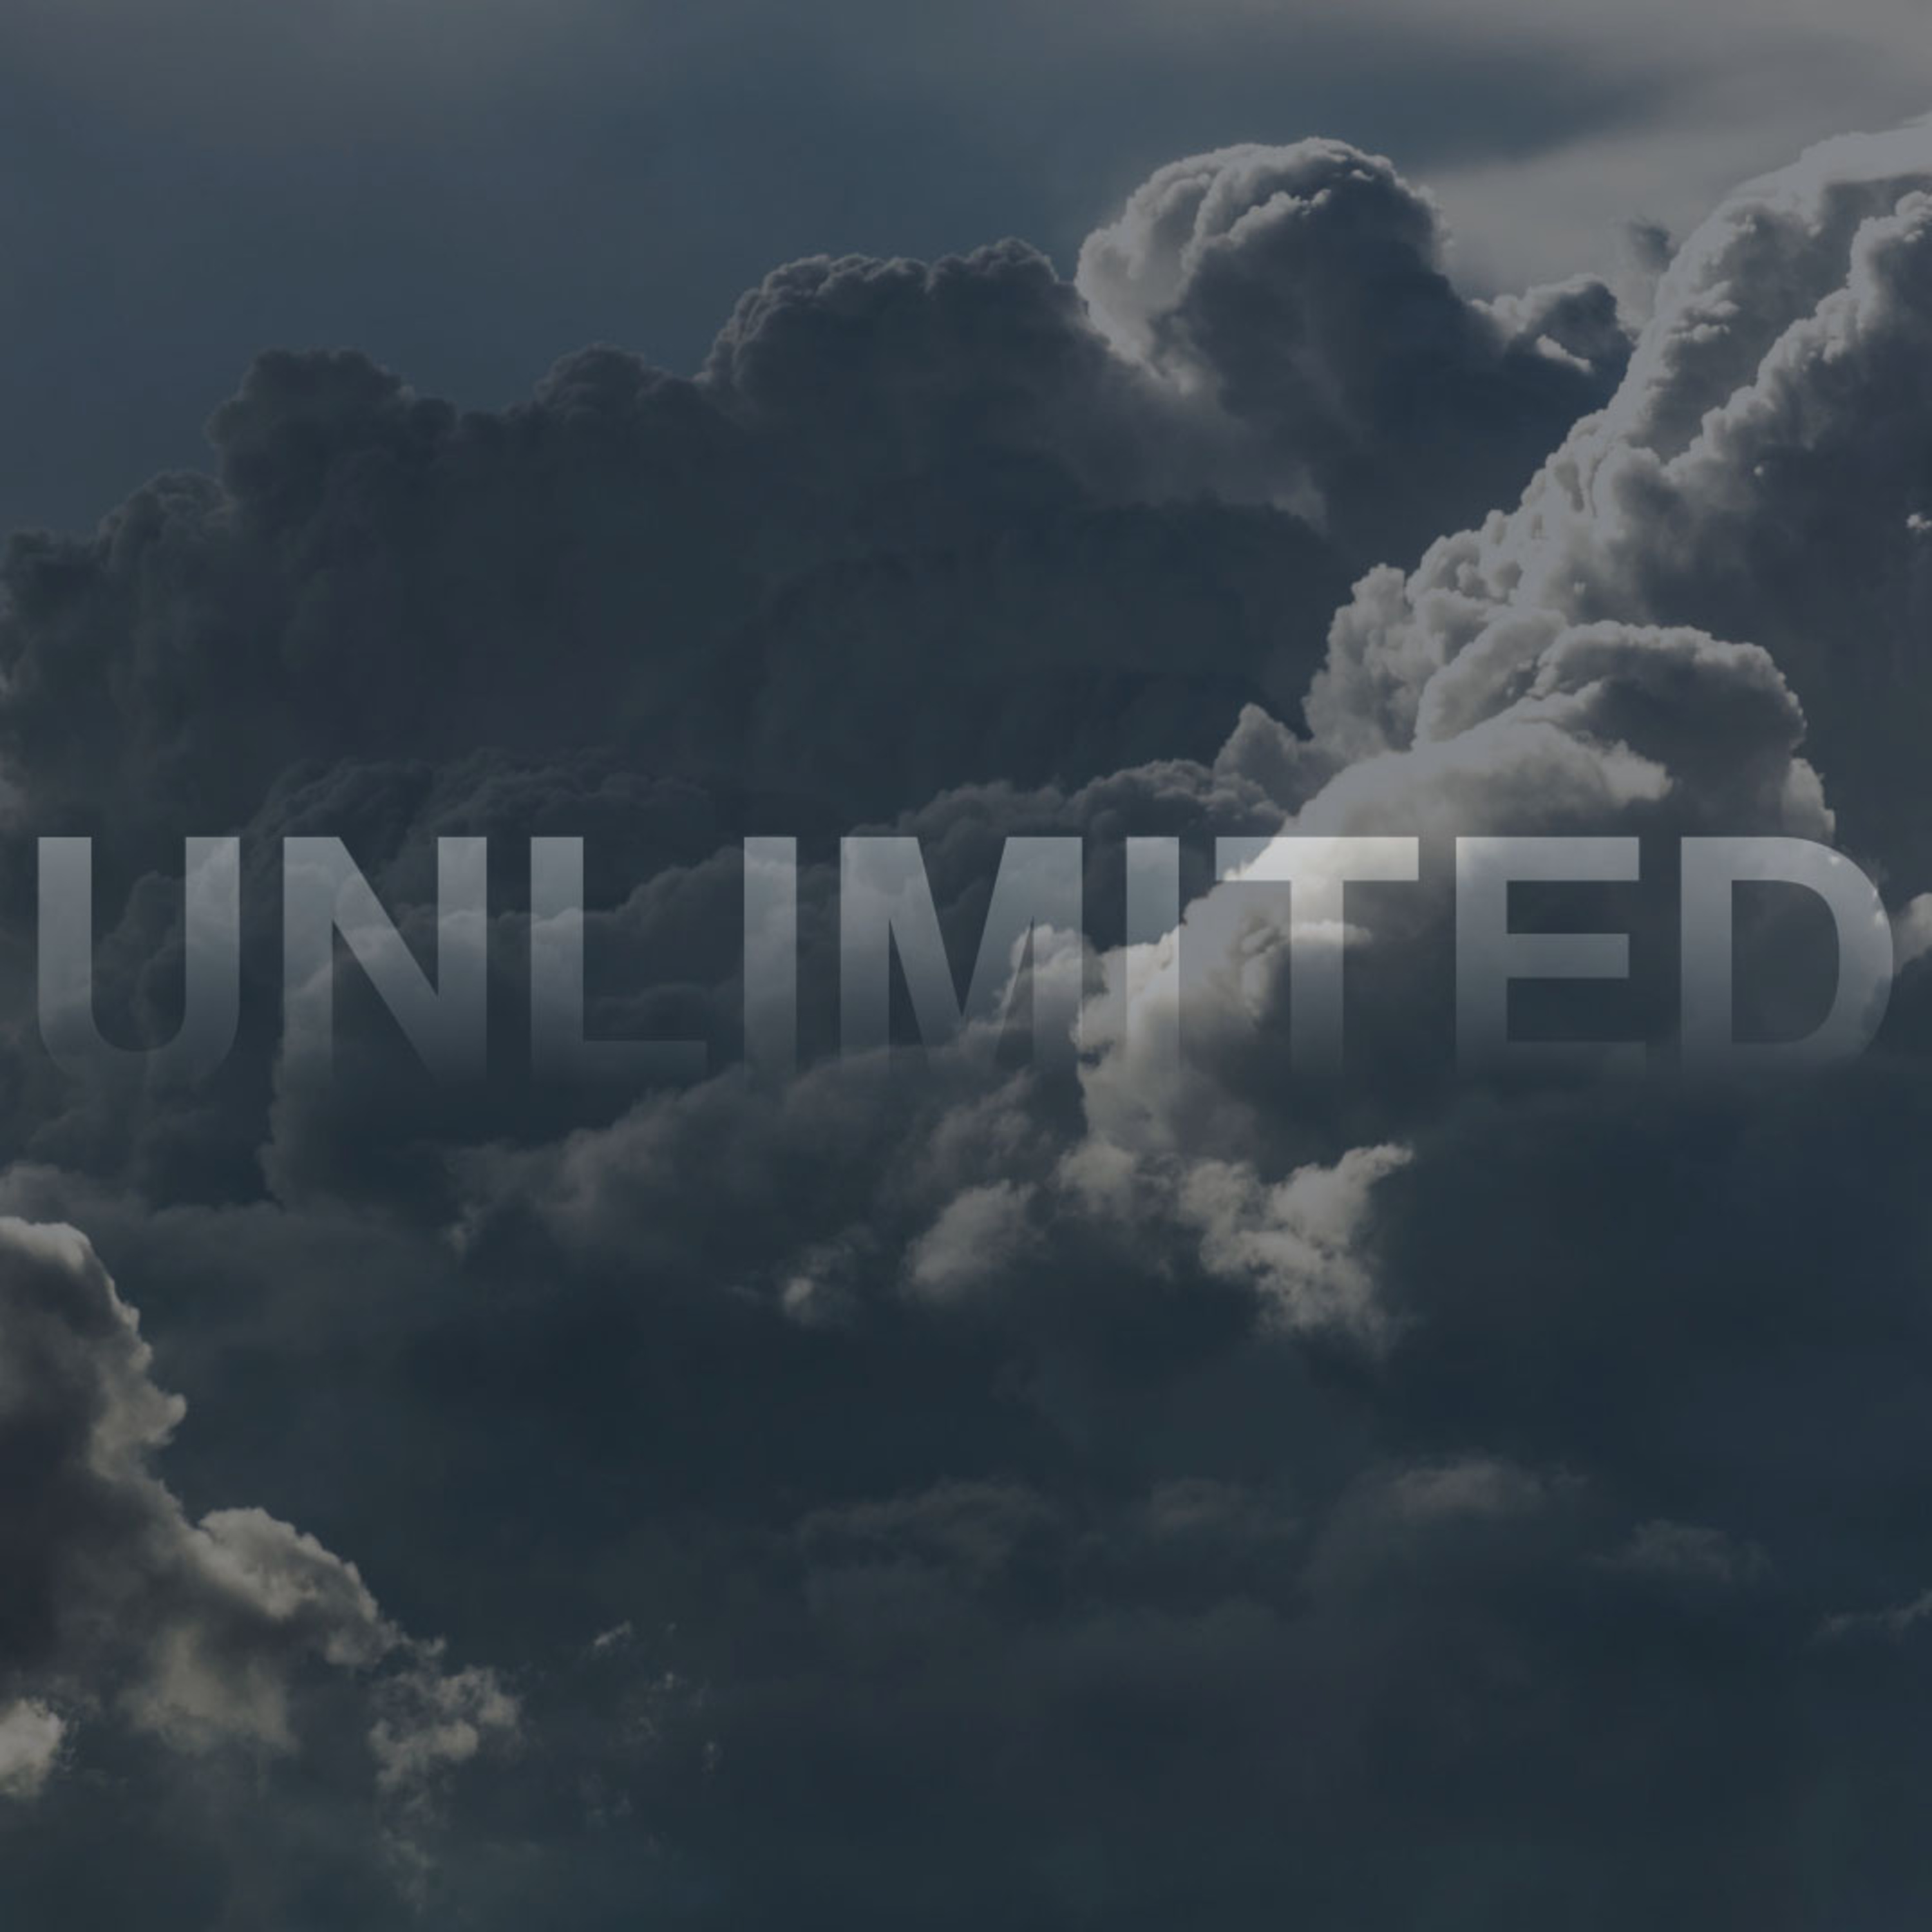 Unlimited #17